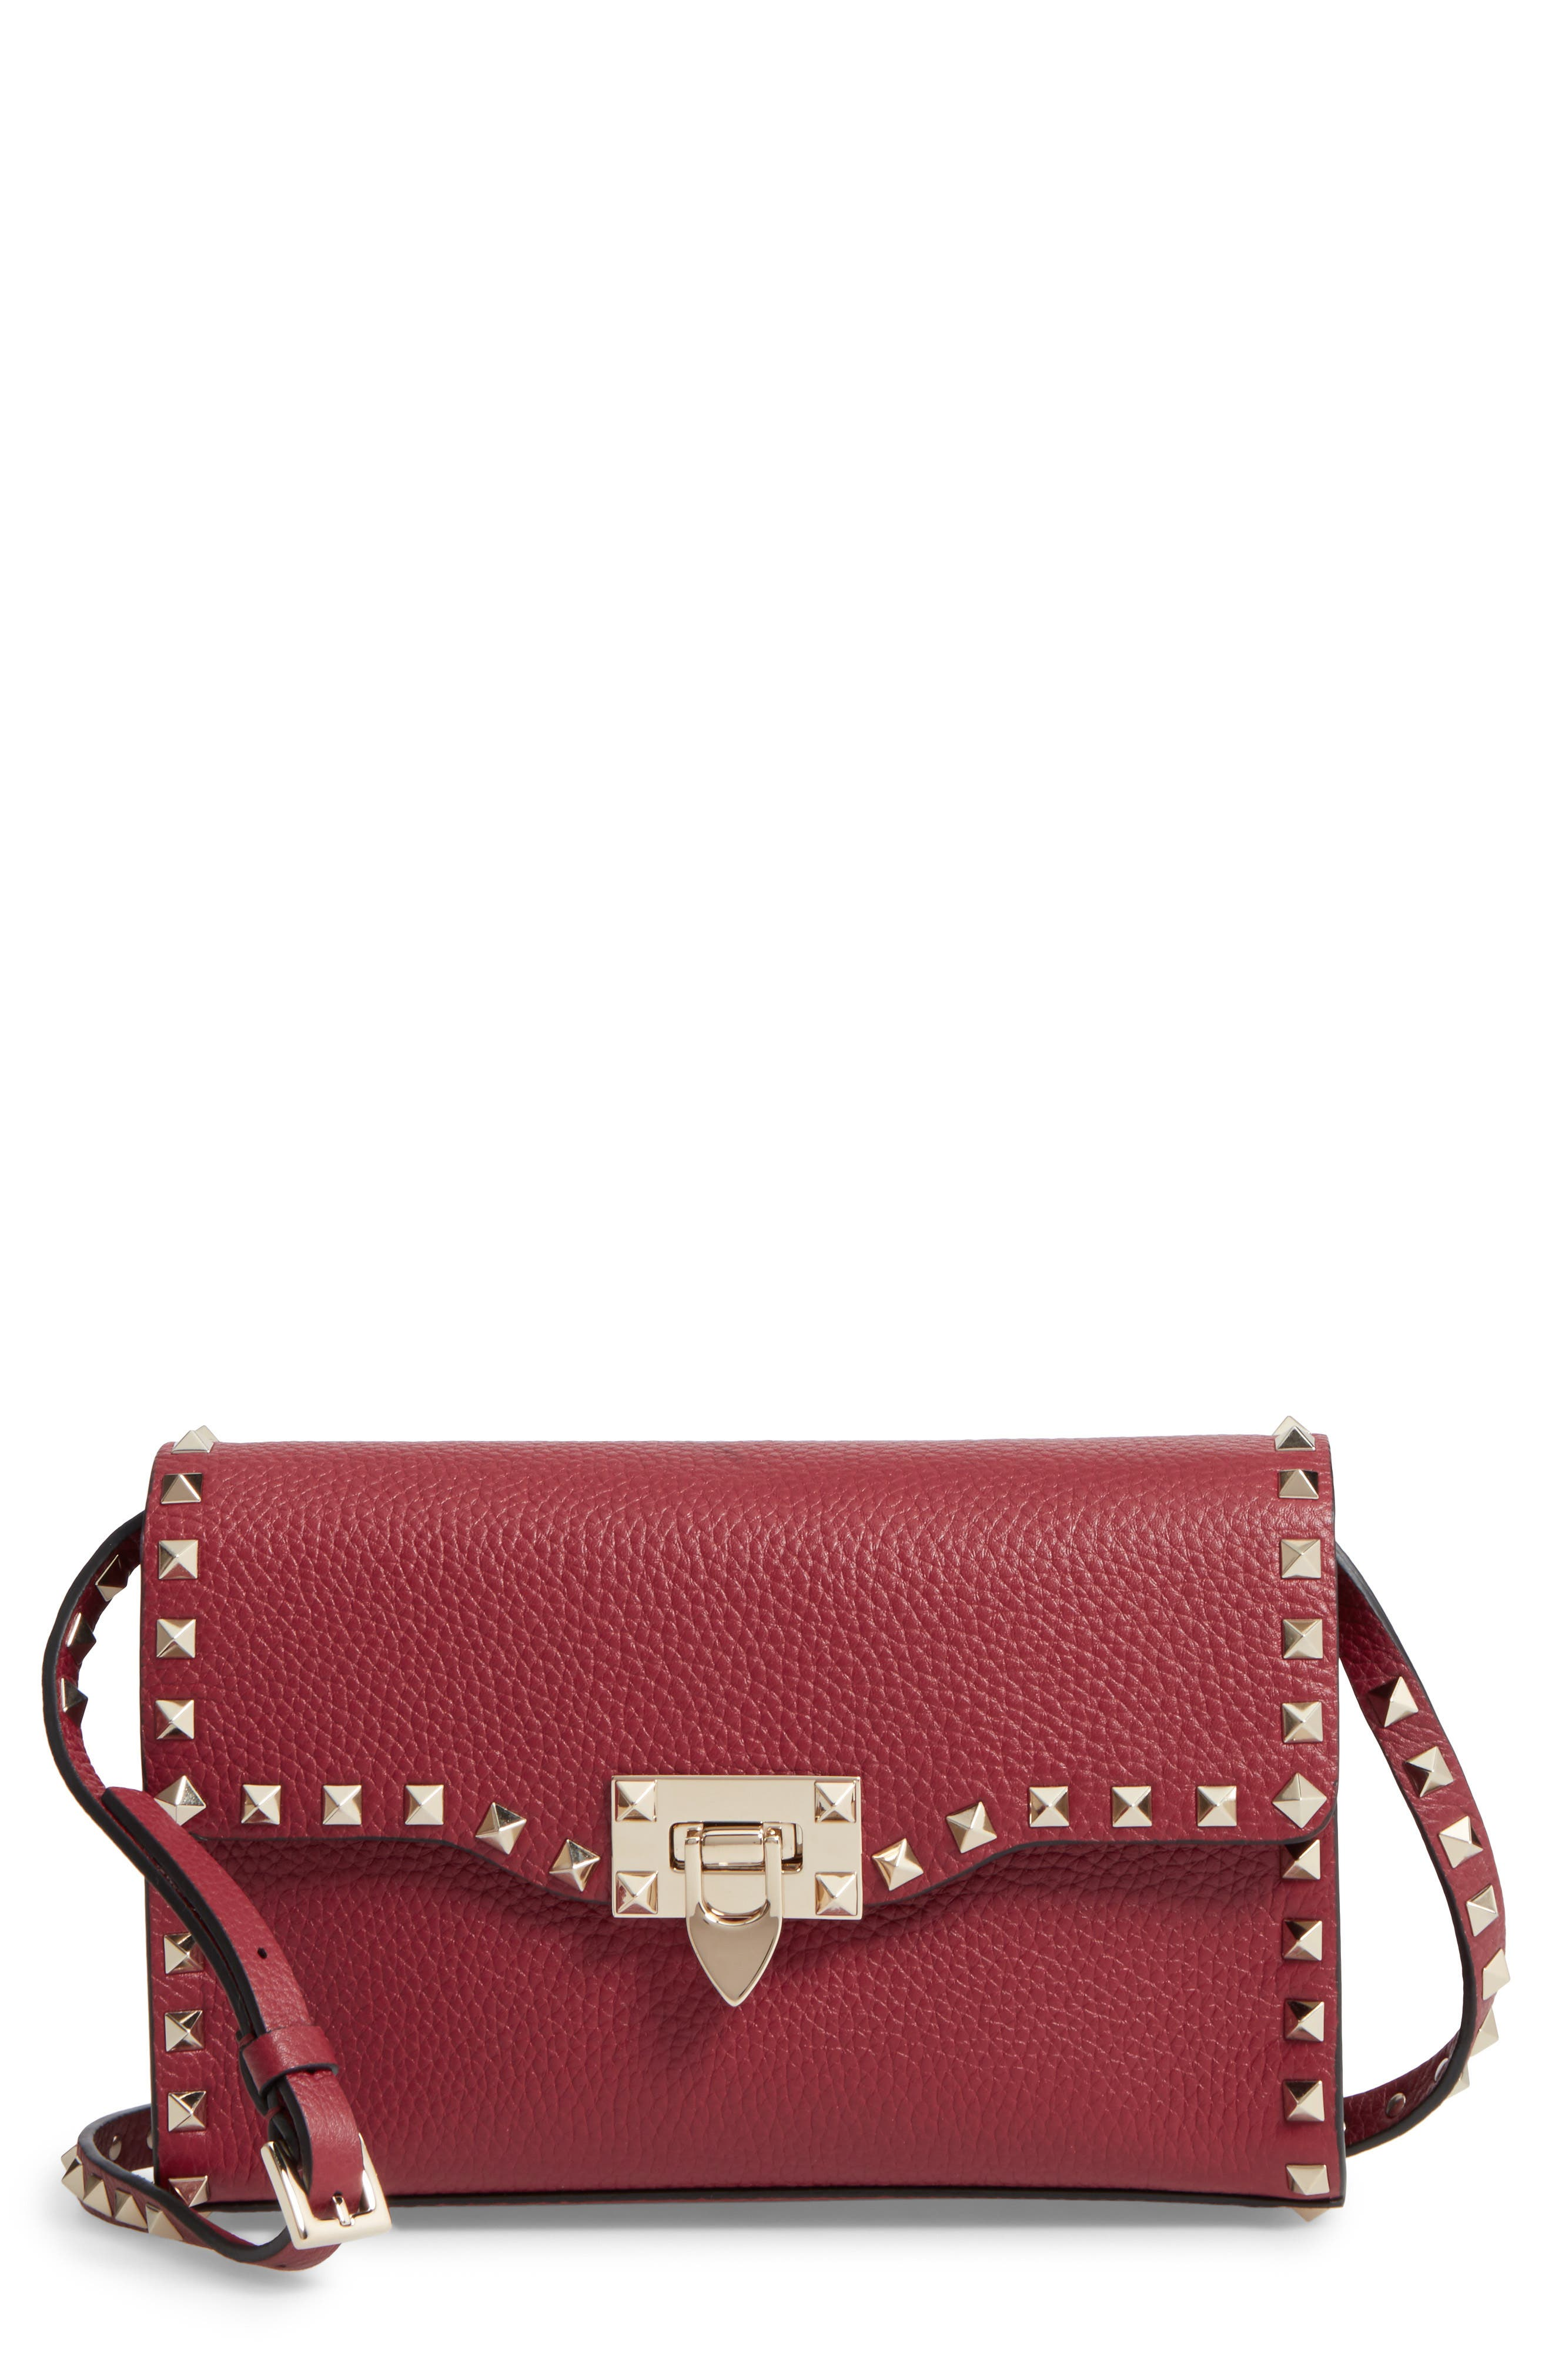 Alternate Image 1 Selected - VALENTINO GARAVANI Medium Rockstud Leather Messenger Bag